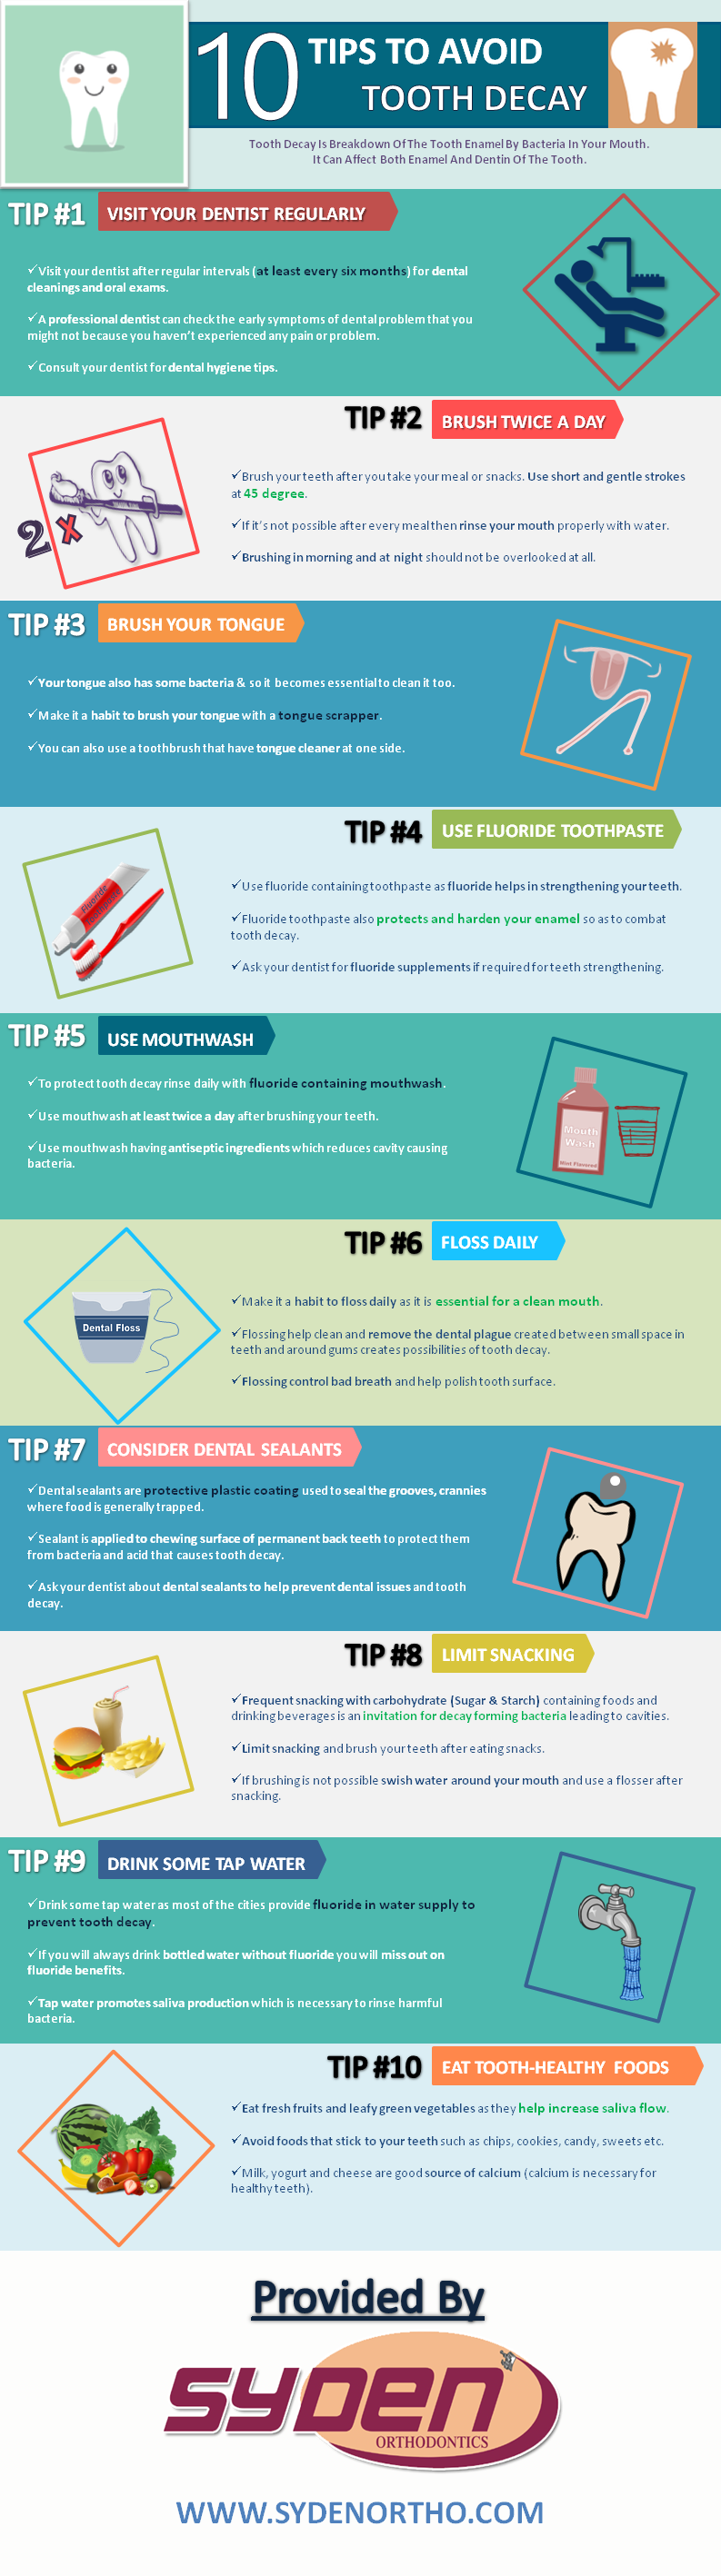 10 TIPS TO AVOID TOOTH DECAY EVERYONE SHOULD KNOW